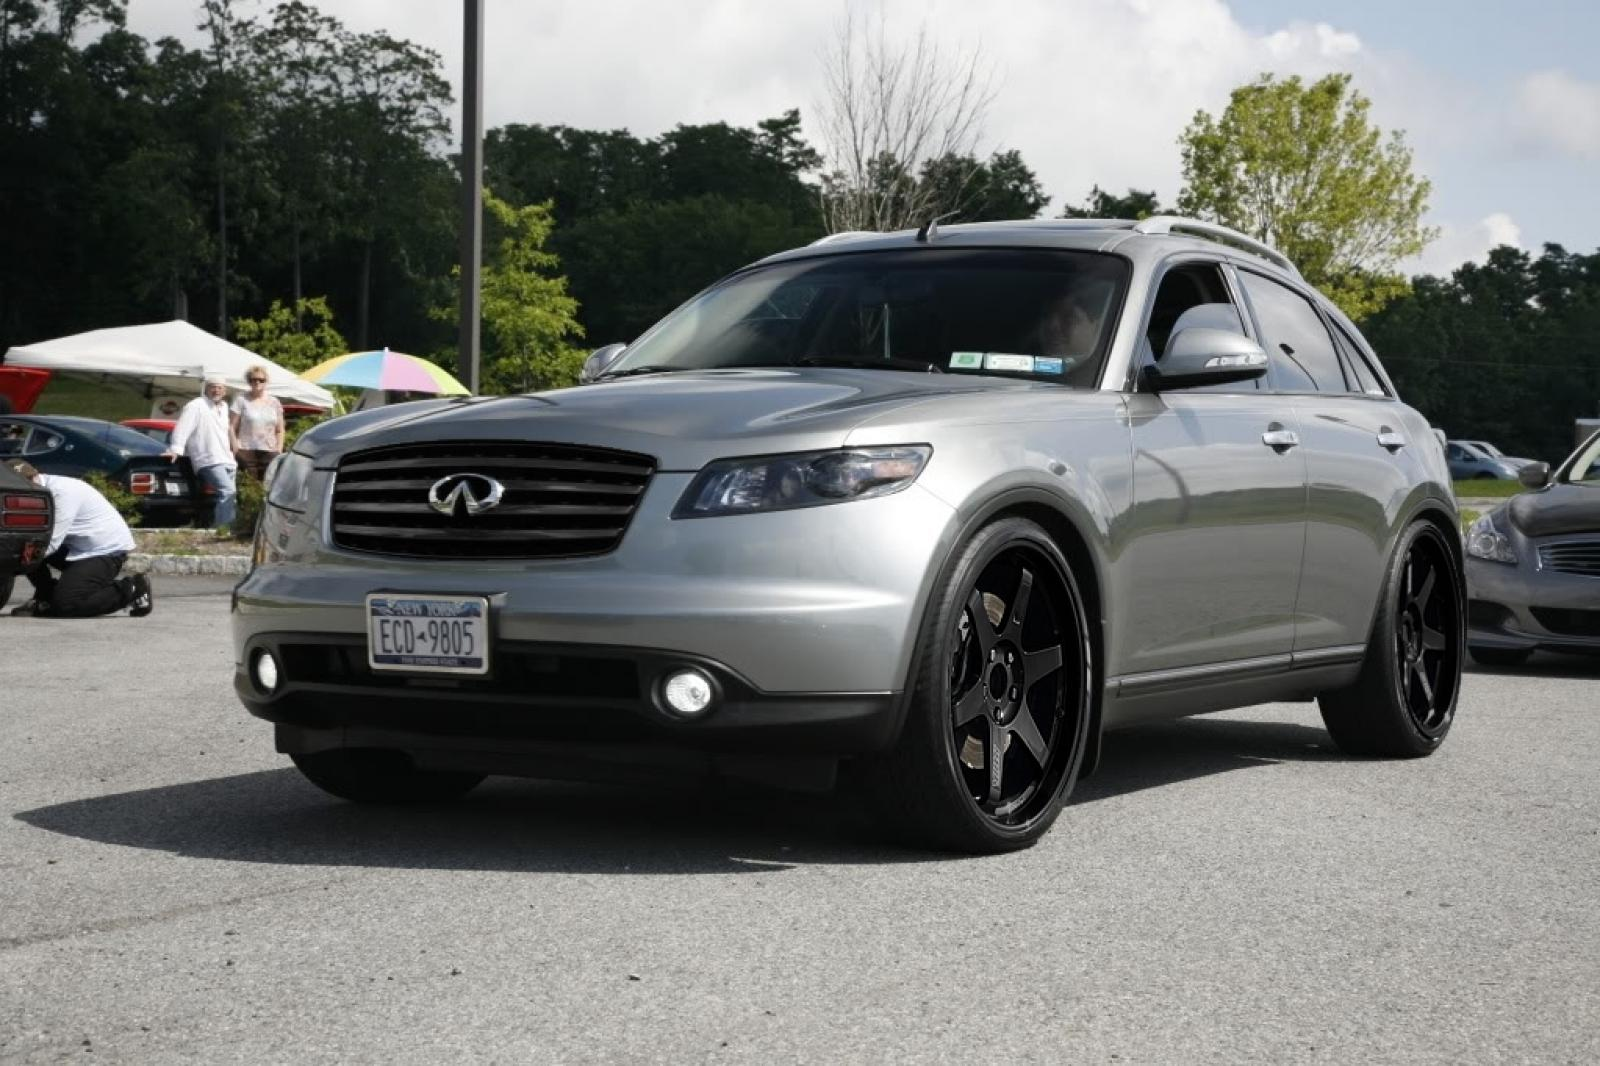 2005 infiniti fx35 silver images hd cars wallpaper 2004 infiniti fx35 information and photos zombiedrive 800 1024 1280 1600 origin 2004 infiniti fx35 vanachro vanachro Choice Image